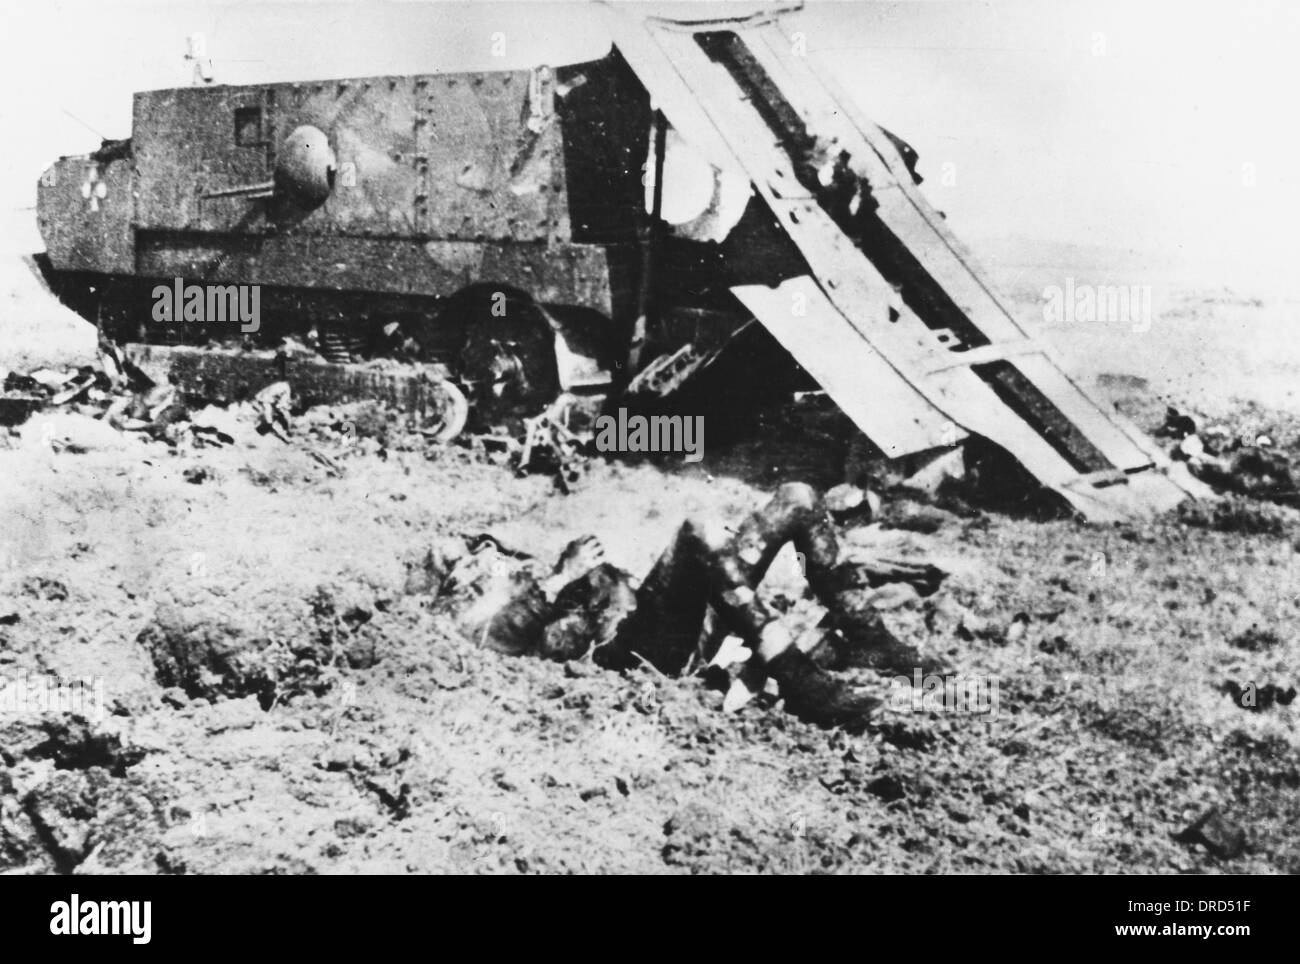 Destroyed French tank WWI - Stock Image